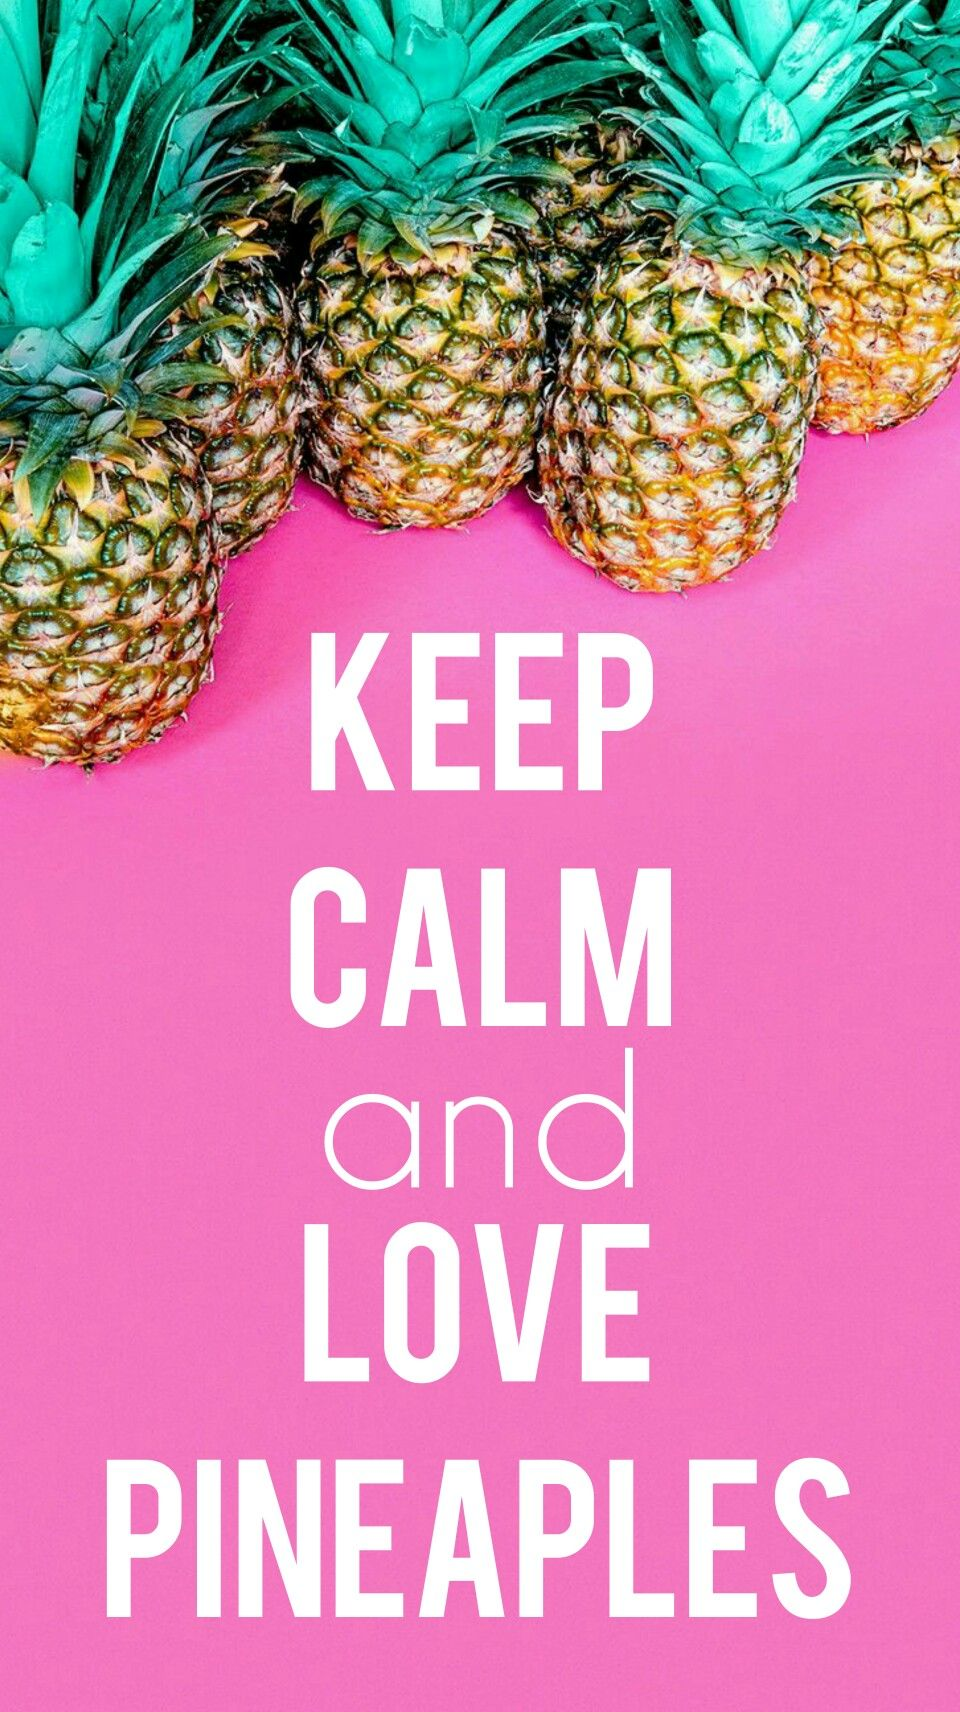 For all of our pineappleloving people! Nike wallpaper